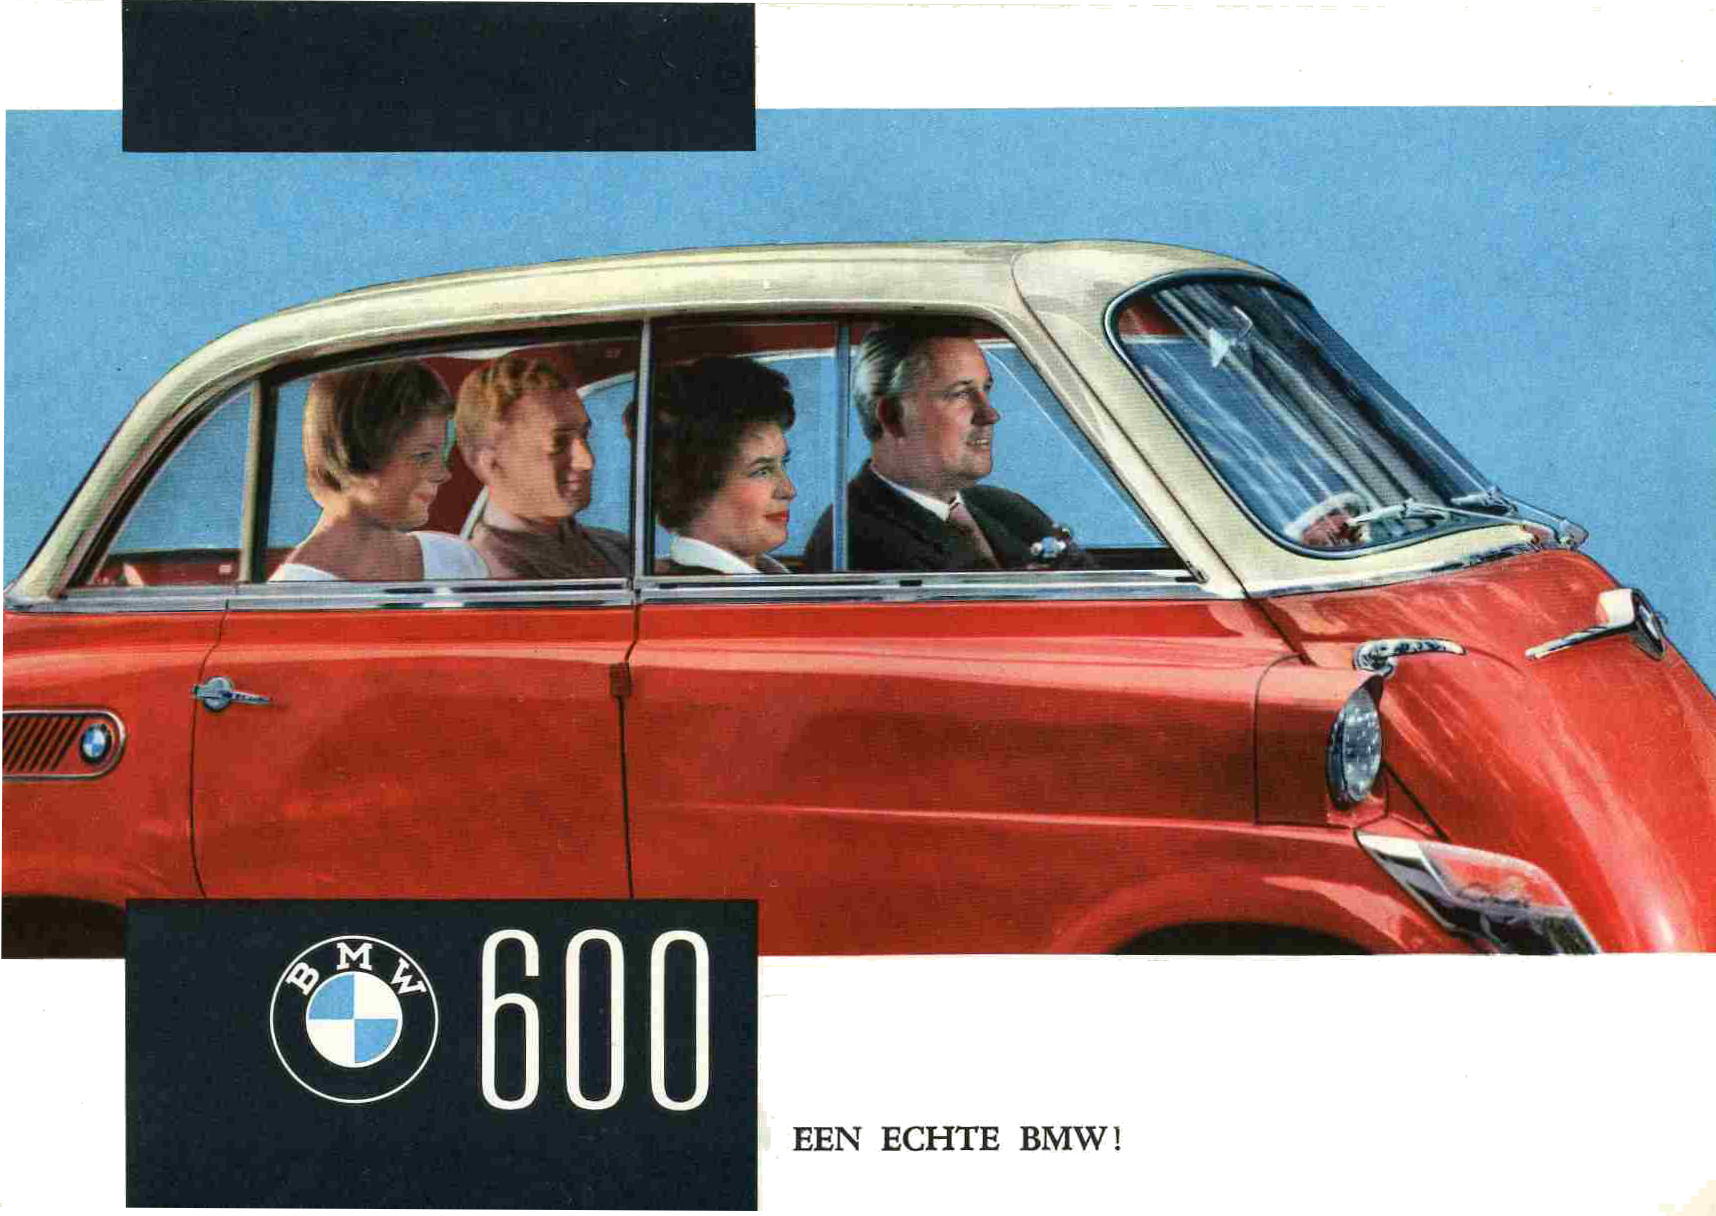 195759 BMW 600 brochure – Old Car Brochure